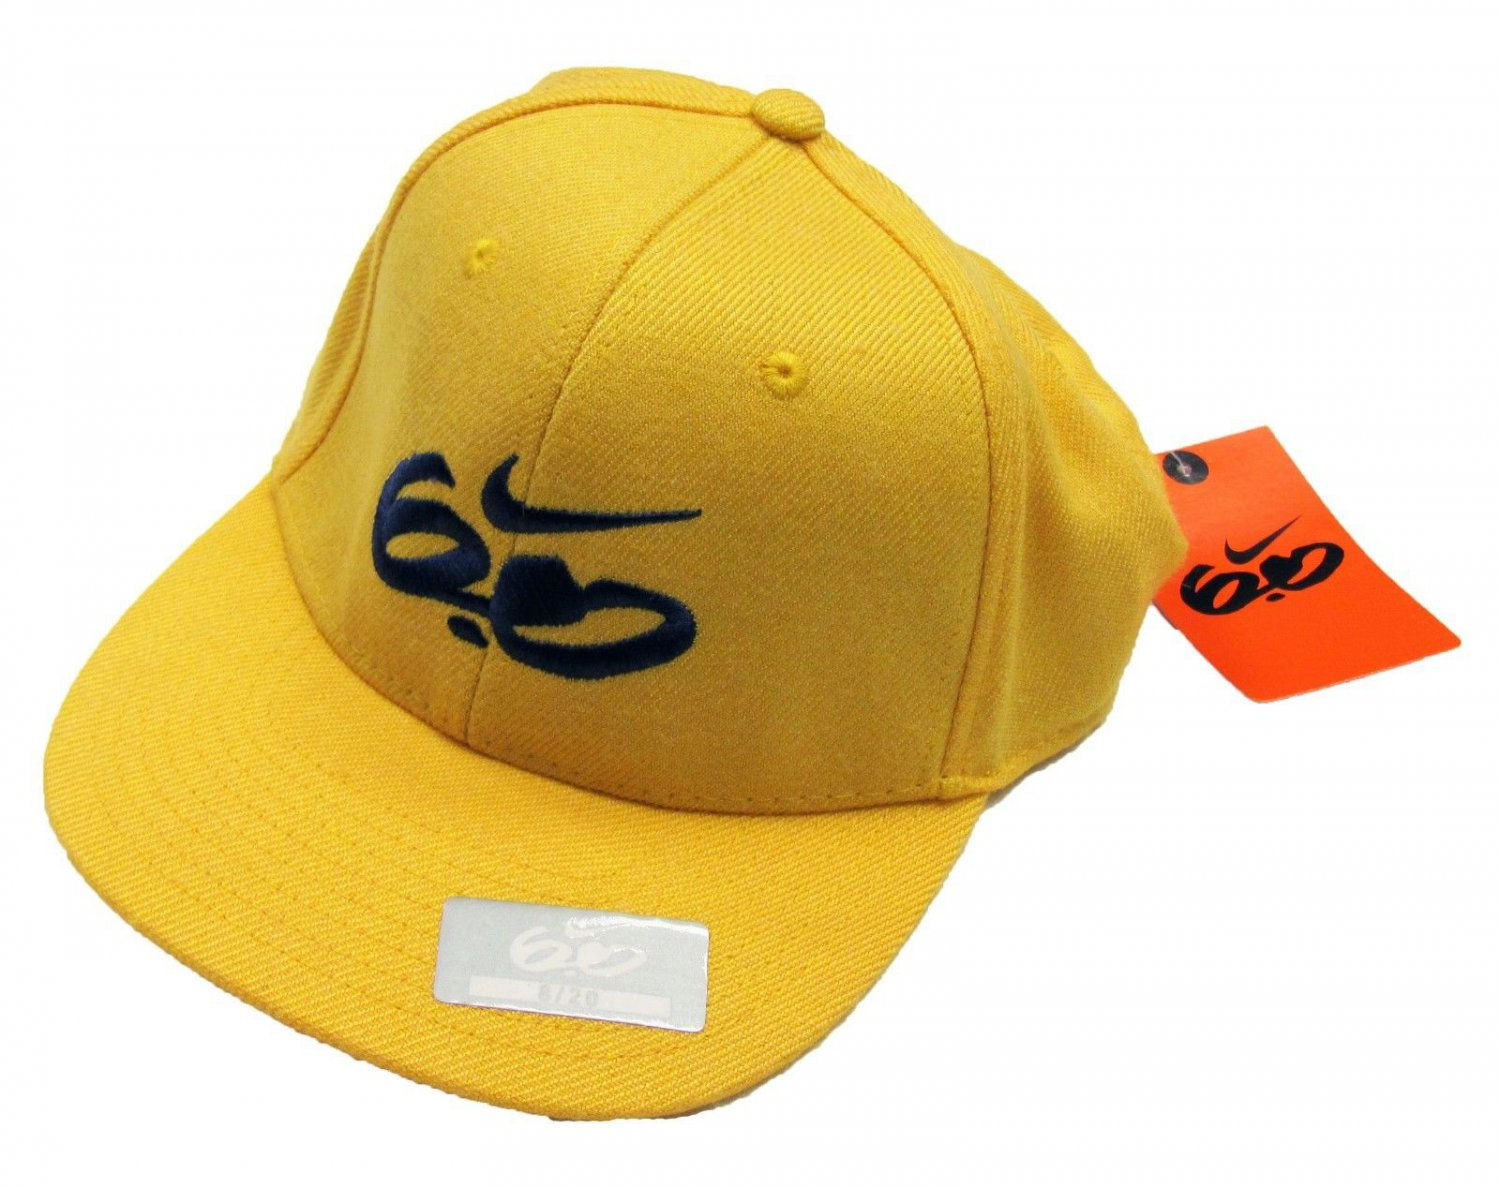 Nike 6.0 Boys Hat size 8-20 Yellow Cap with Logo Boy's New